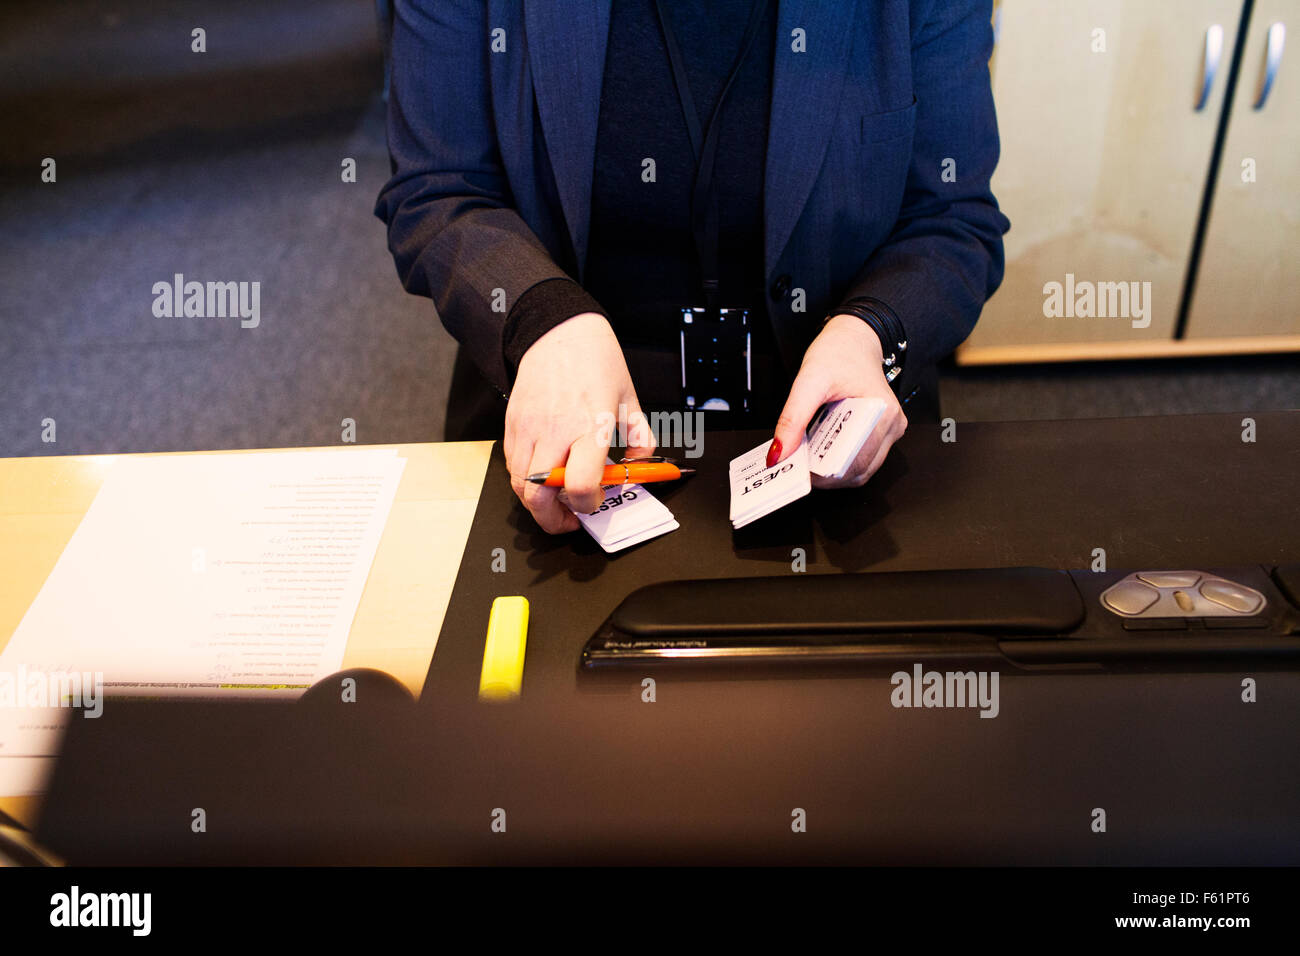 Receptionist holding name tags for visitors - Stock Image